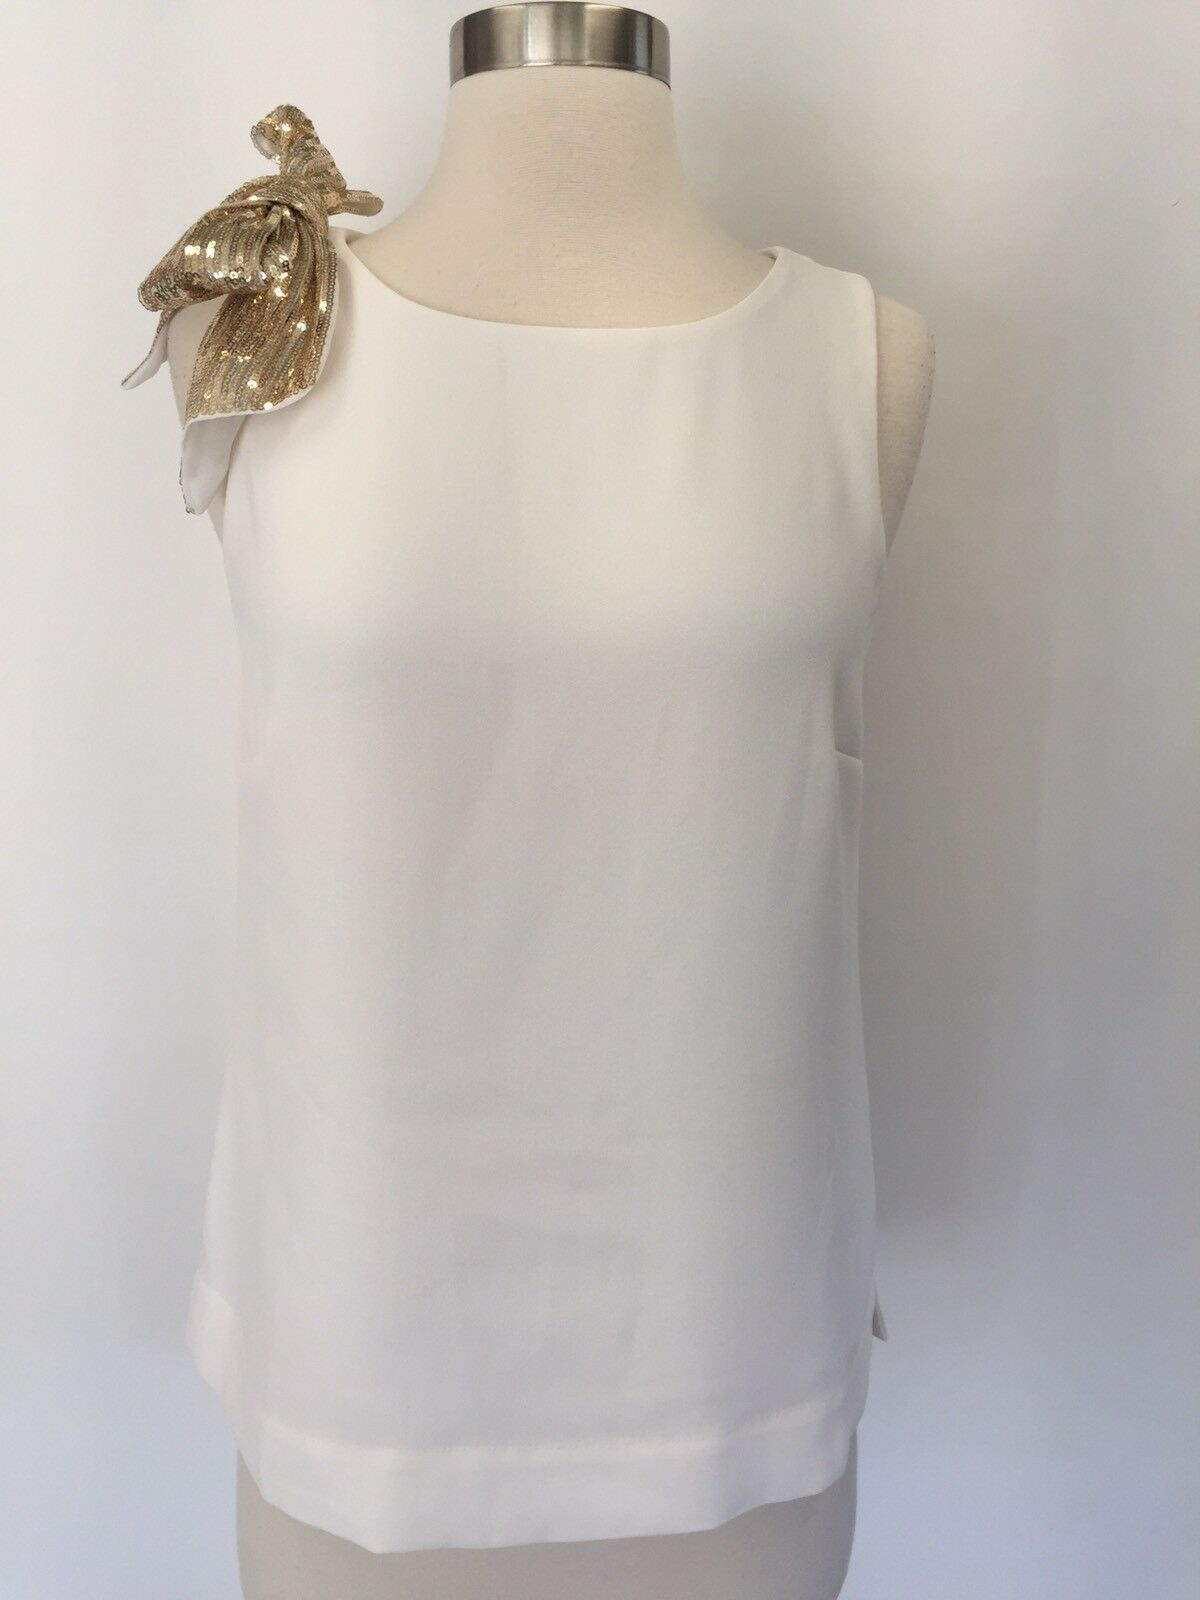 J CREW DRAPEY TANK TOP WITH SHOULDER SEQUIN BOW IVORY Größe 0 H3755 NEW